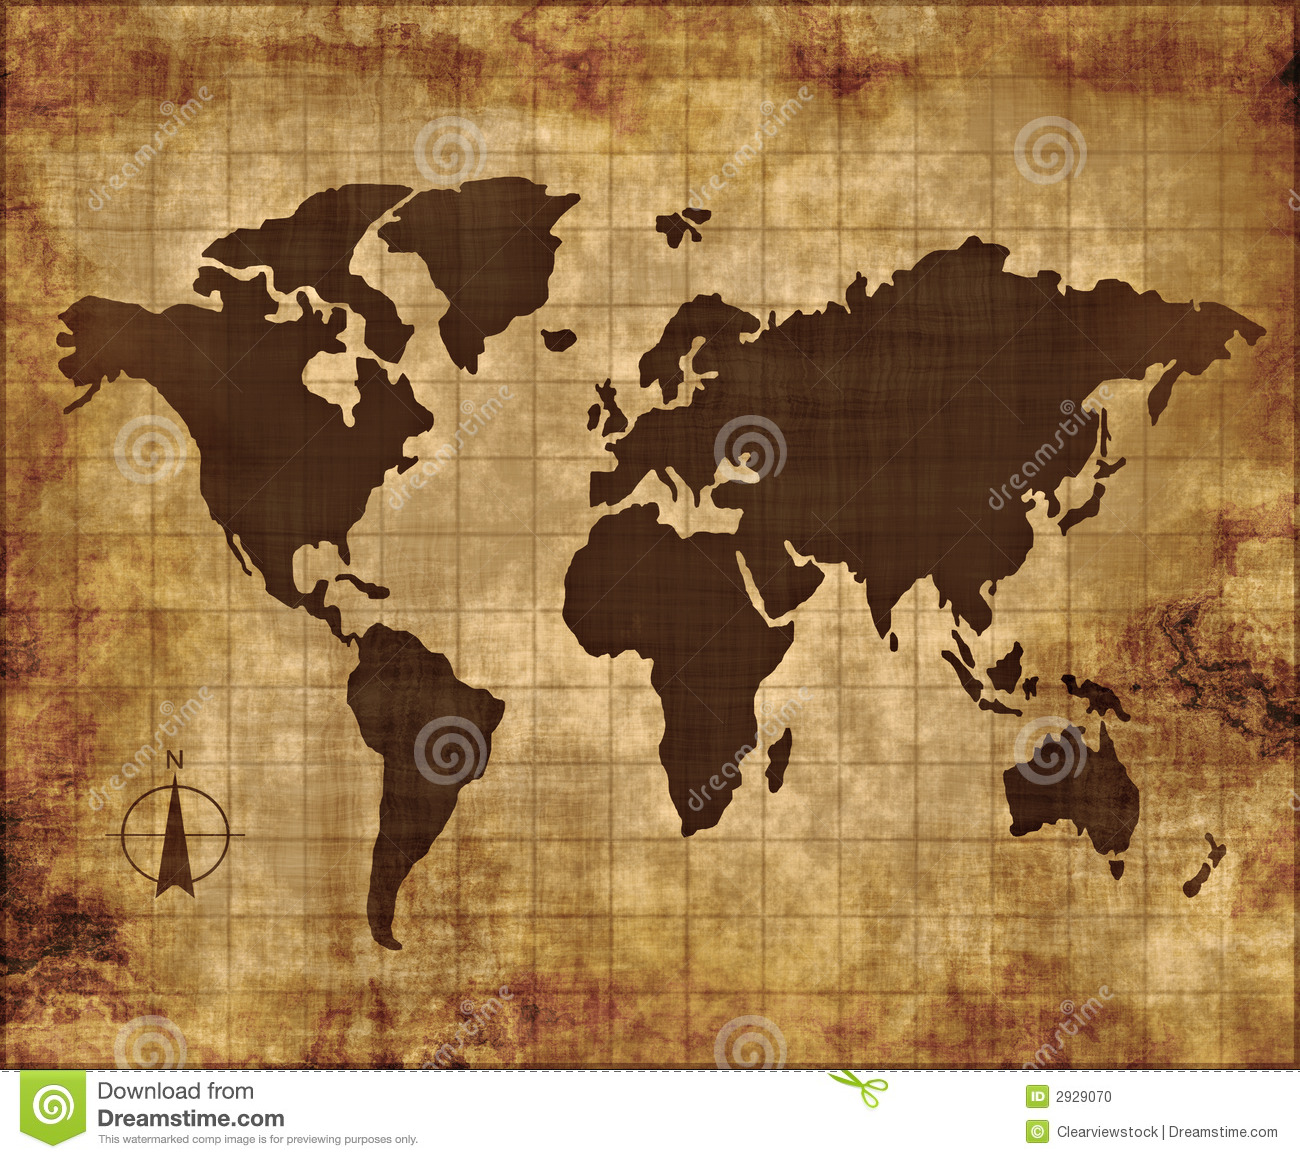 Old Fabric Paper Parchment Map Stock Vector - Illustration ...